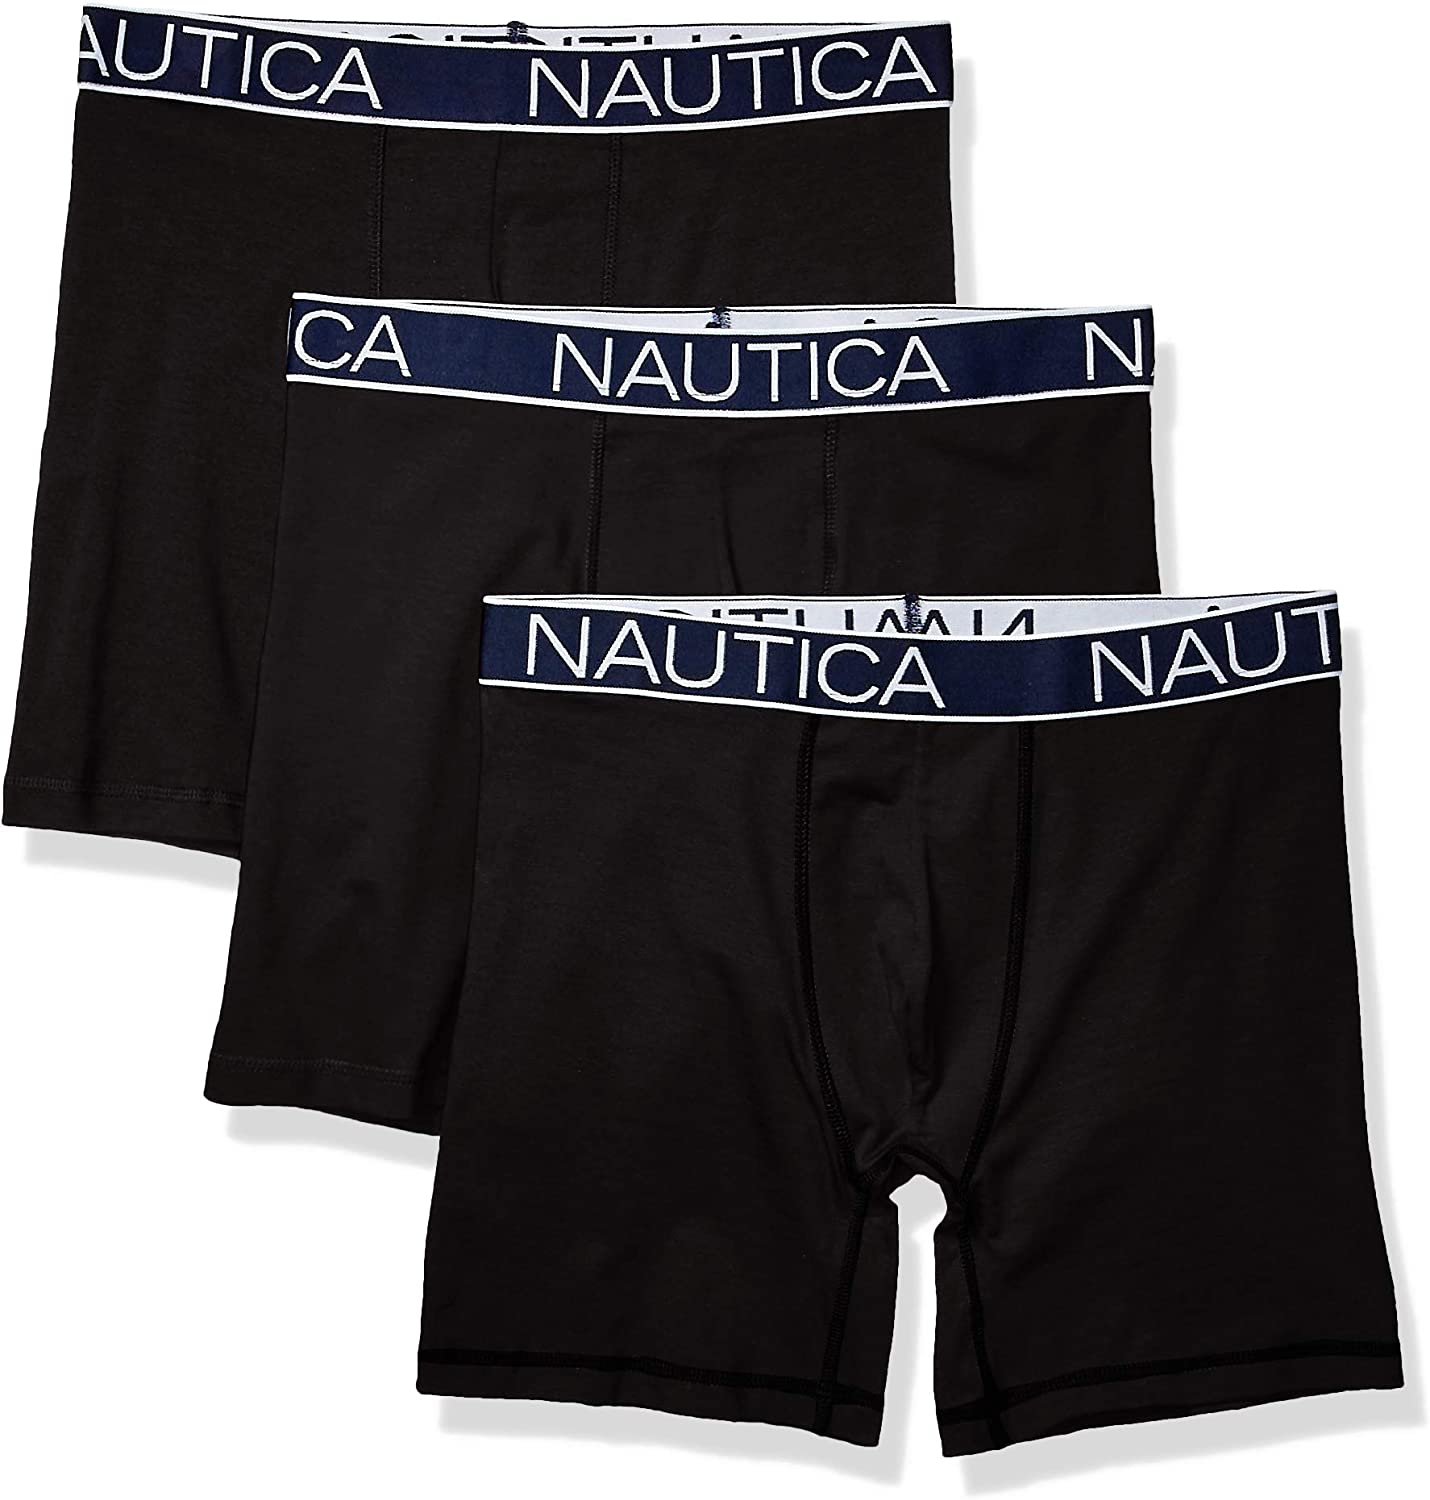 Nautica All stores are ! Super beauty product restock quality top! sold Men's 3-Pack Classic Underwear Cotton Stretch Brie Boxer